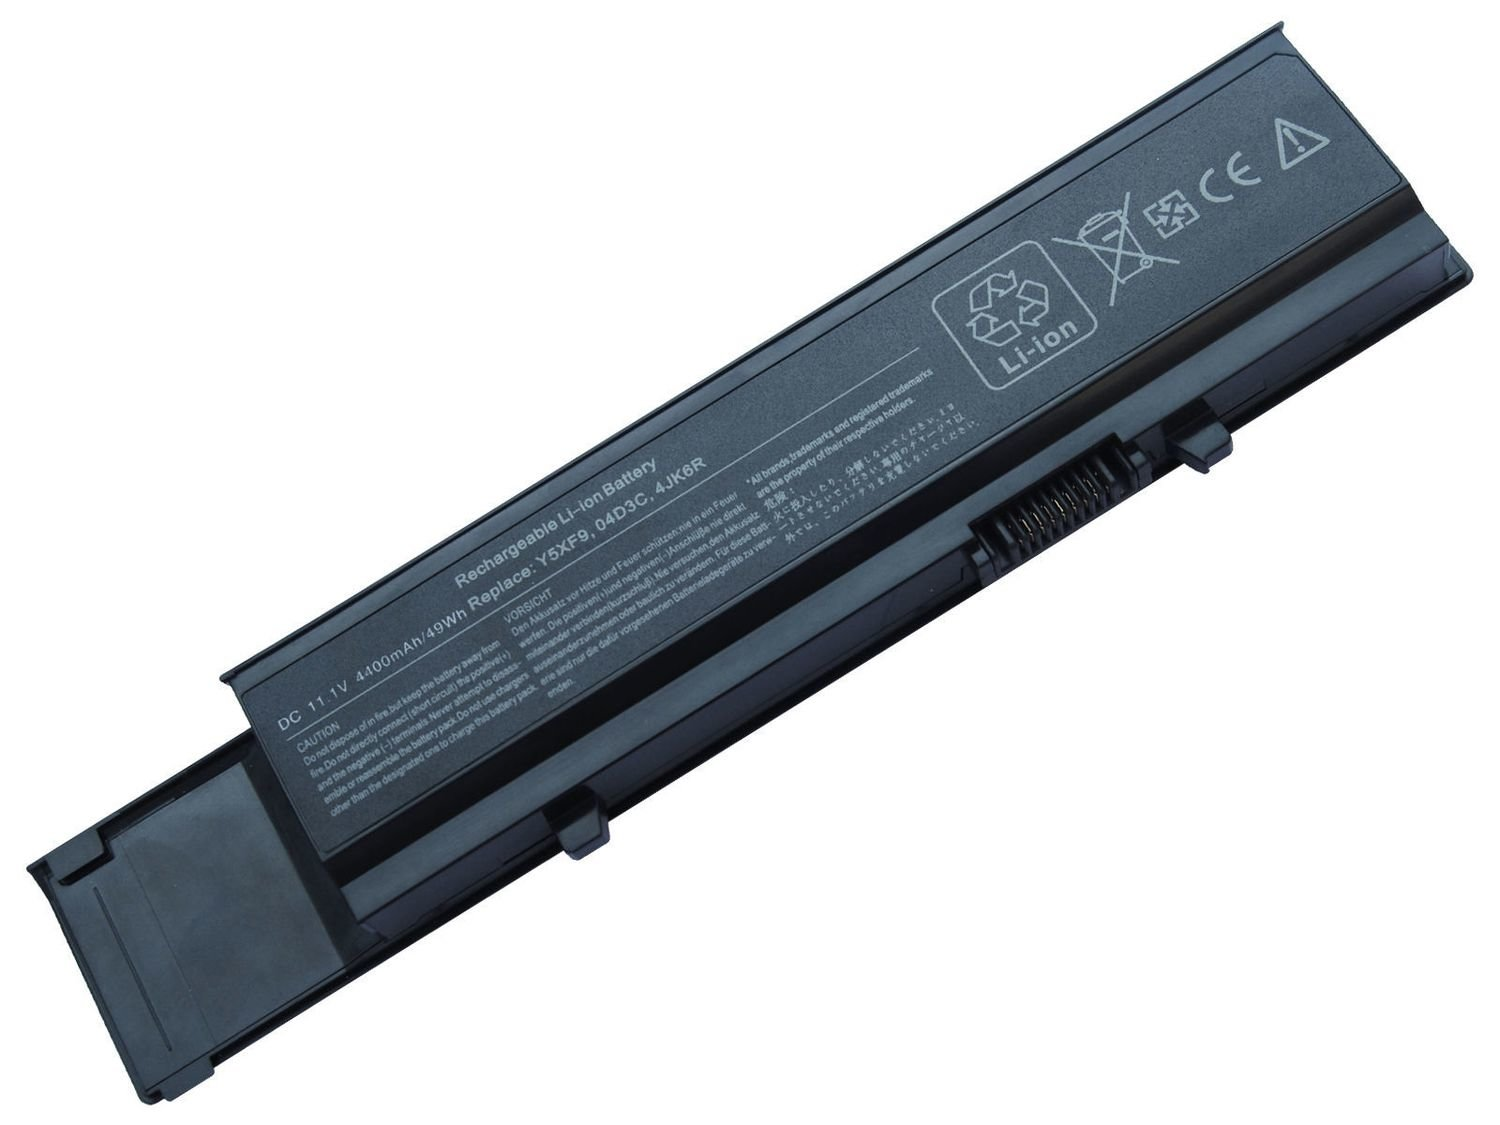 Dell vostro 3400 3500 3700 Series compatible laptop battery